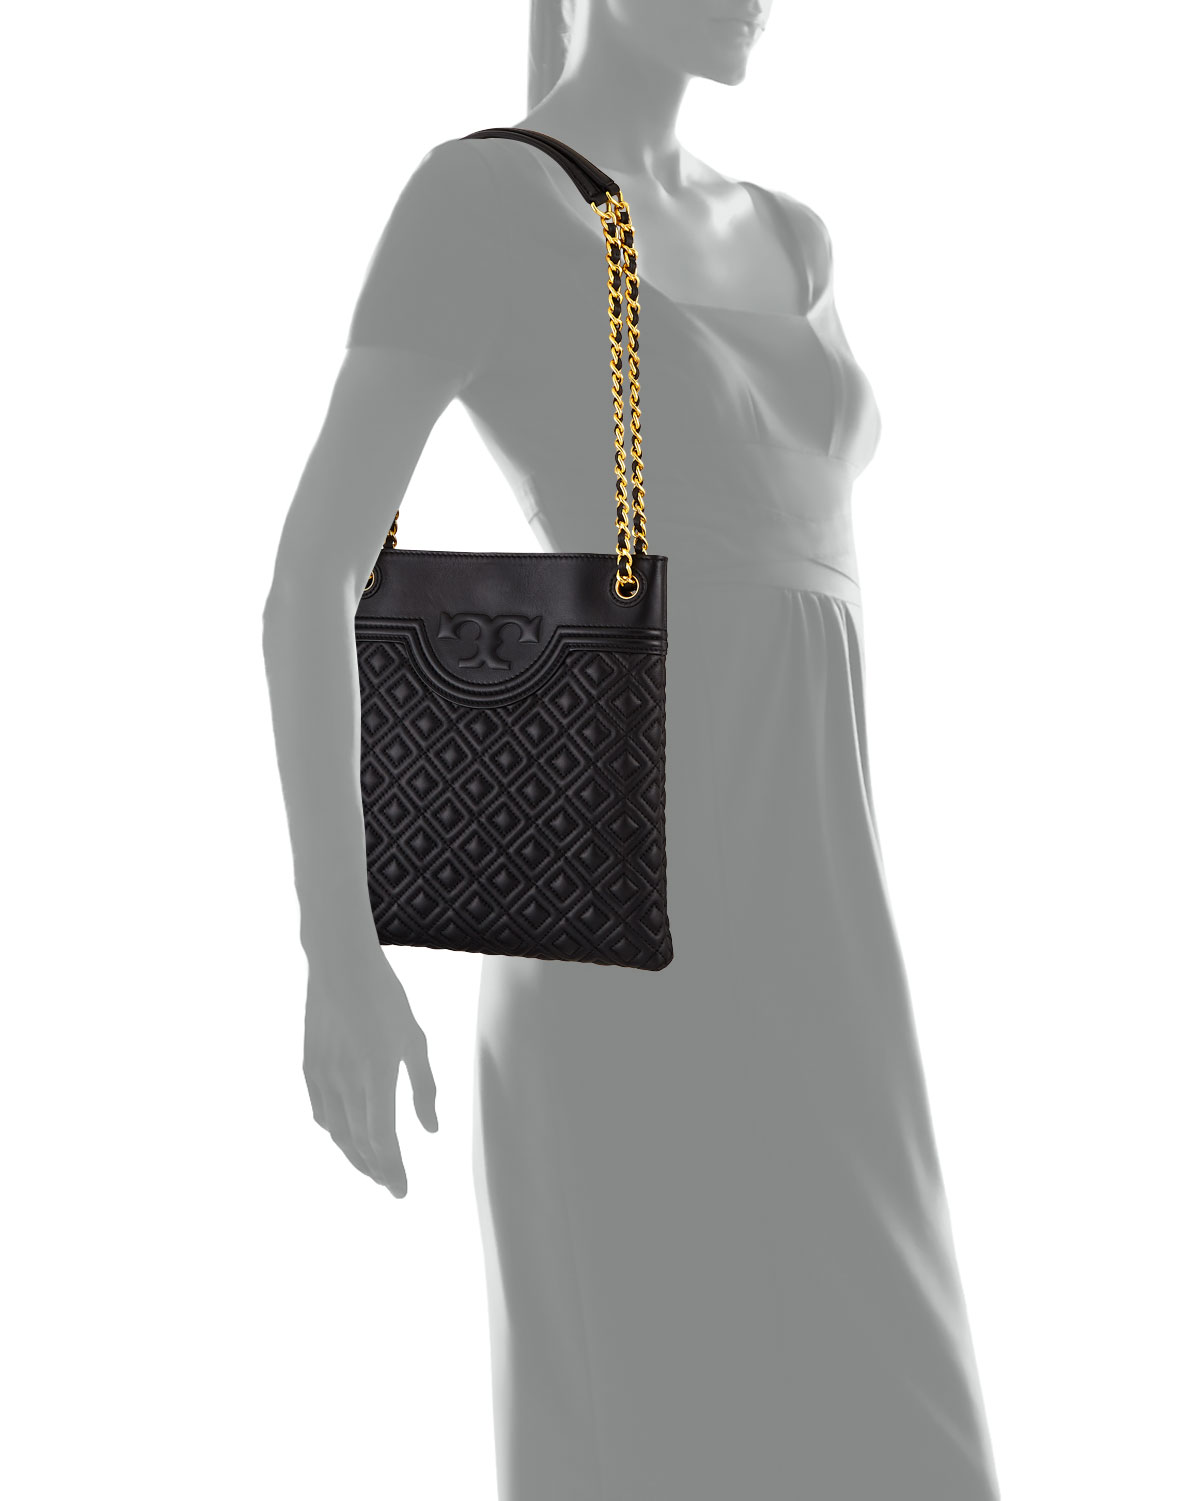 6dda3a624878 Tory Burch Fleming Diamond-Quilted Swing-Pack Tote Bag - Brass Hardware